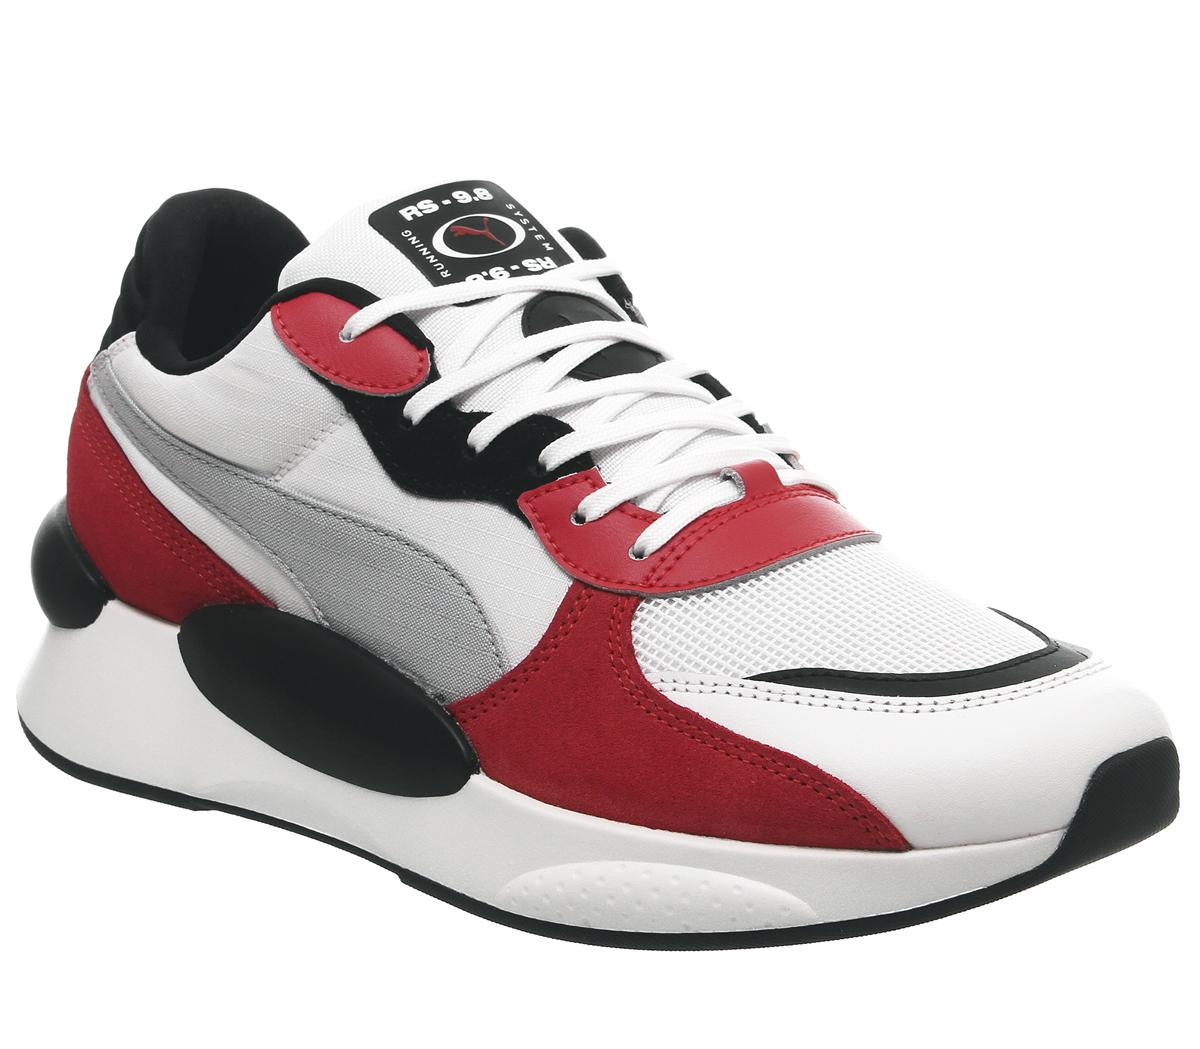 Rs-9.8 Space Trainers